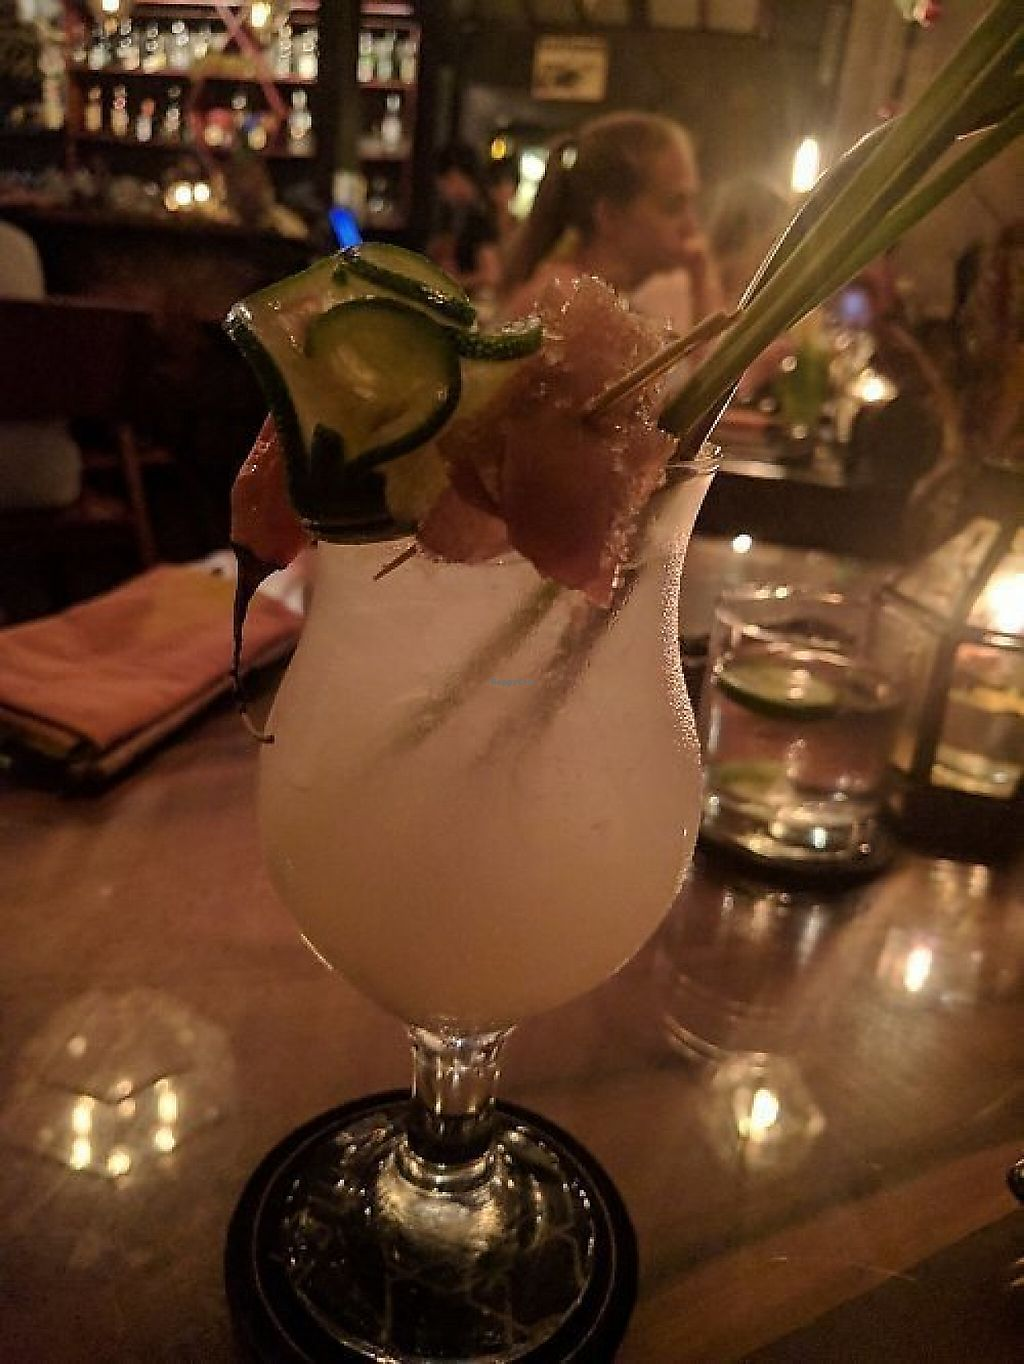 """Photo of Kismet Restaurant & Lounge  by <a href=""""/members/profile/wildeyedgirl"""">wildeyedgirl</a> <br/>Lemongrass, chilli and ginger cocktail <br/> May 16, 2017  - <a href='/contact/abuse/image/92216/259214'>Report</a>"""